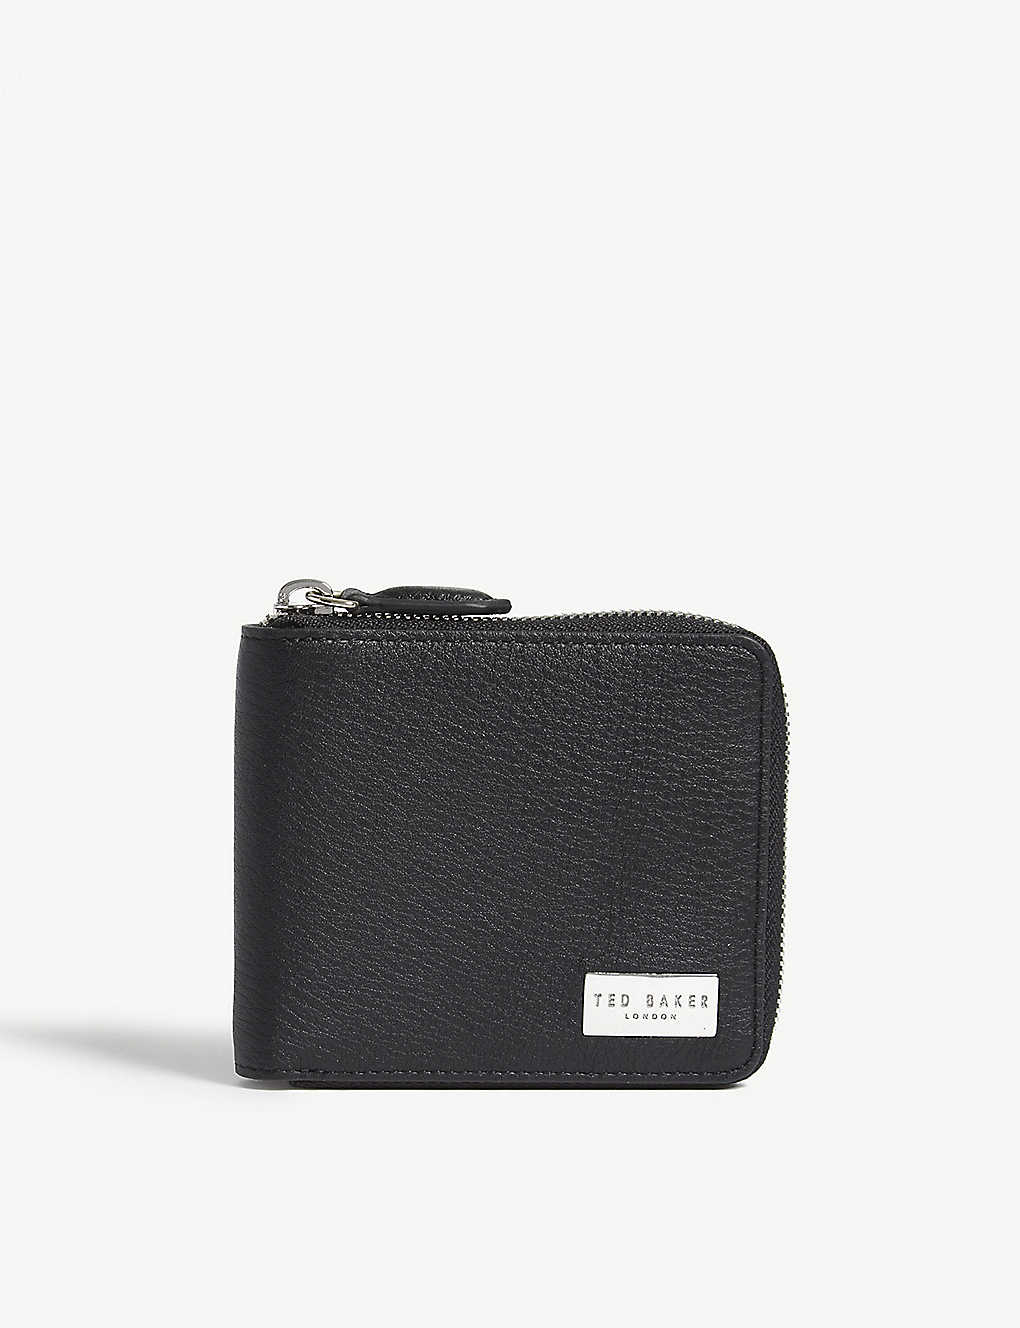 TED BAKER: Grained leather coin wallet